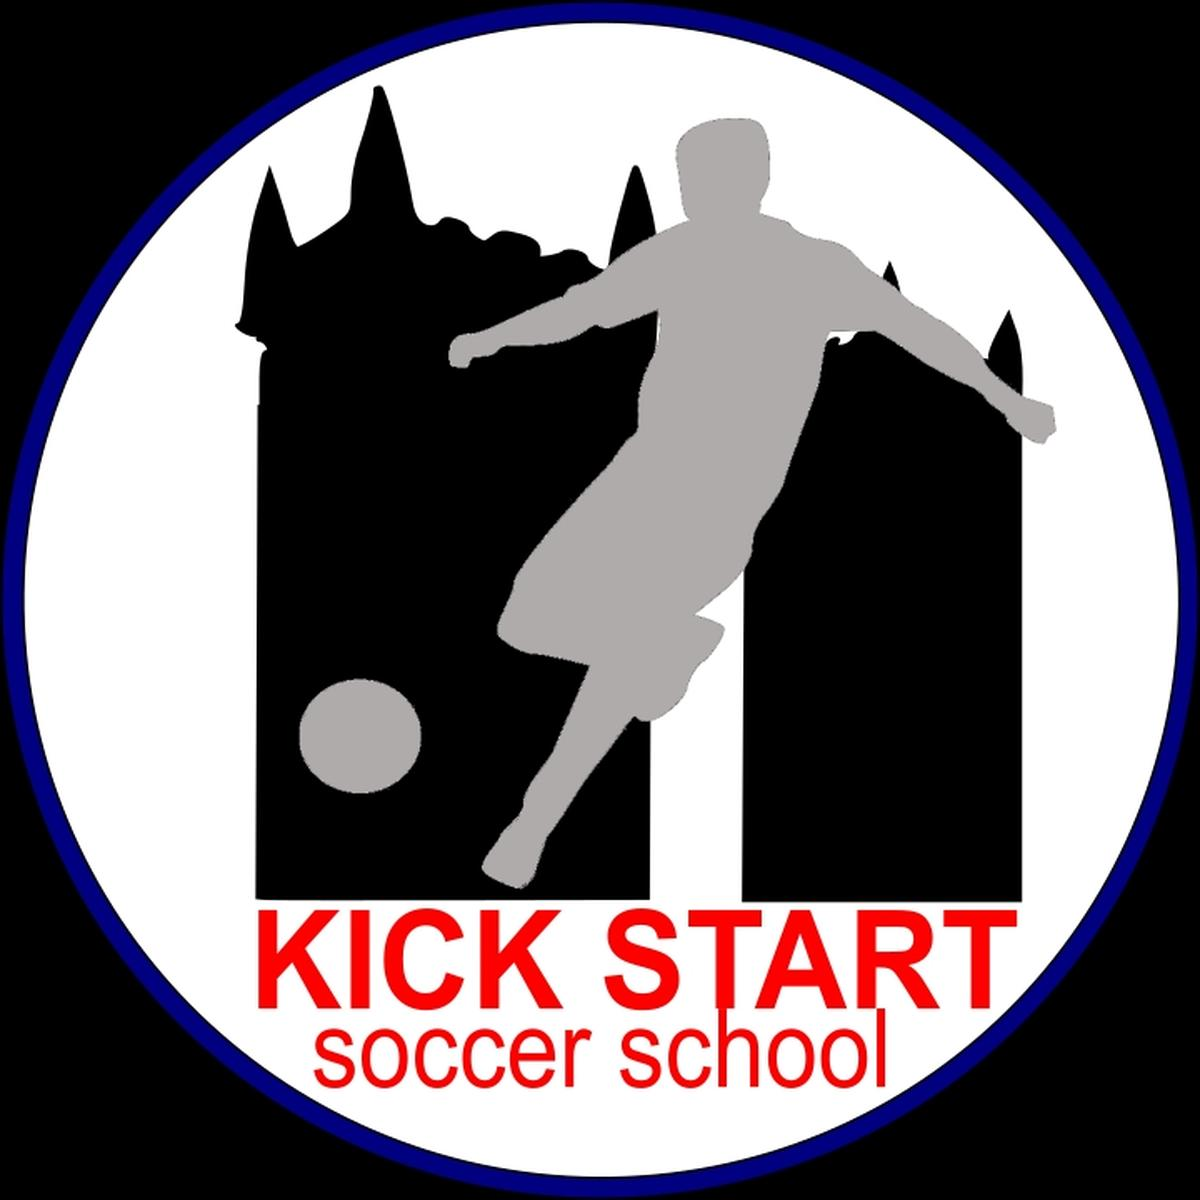 KICK START SOCCER SCHOOL (GB)